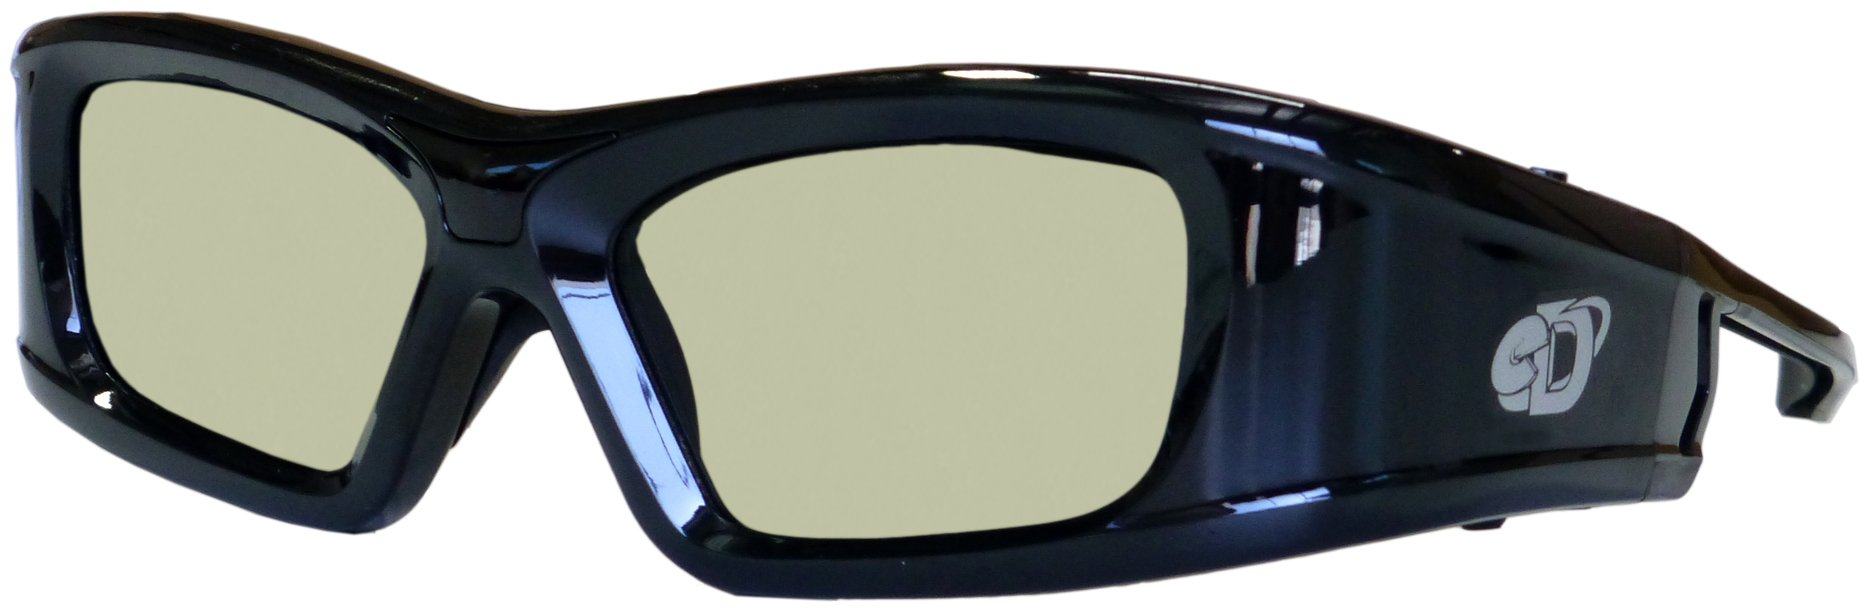 SONY Active Bluetooth 3D Glasses Rechargeable Compatible TDG-BT500A + TDG-BT400A 3-D Glasses by eDimensional